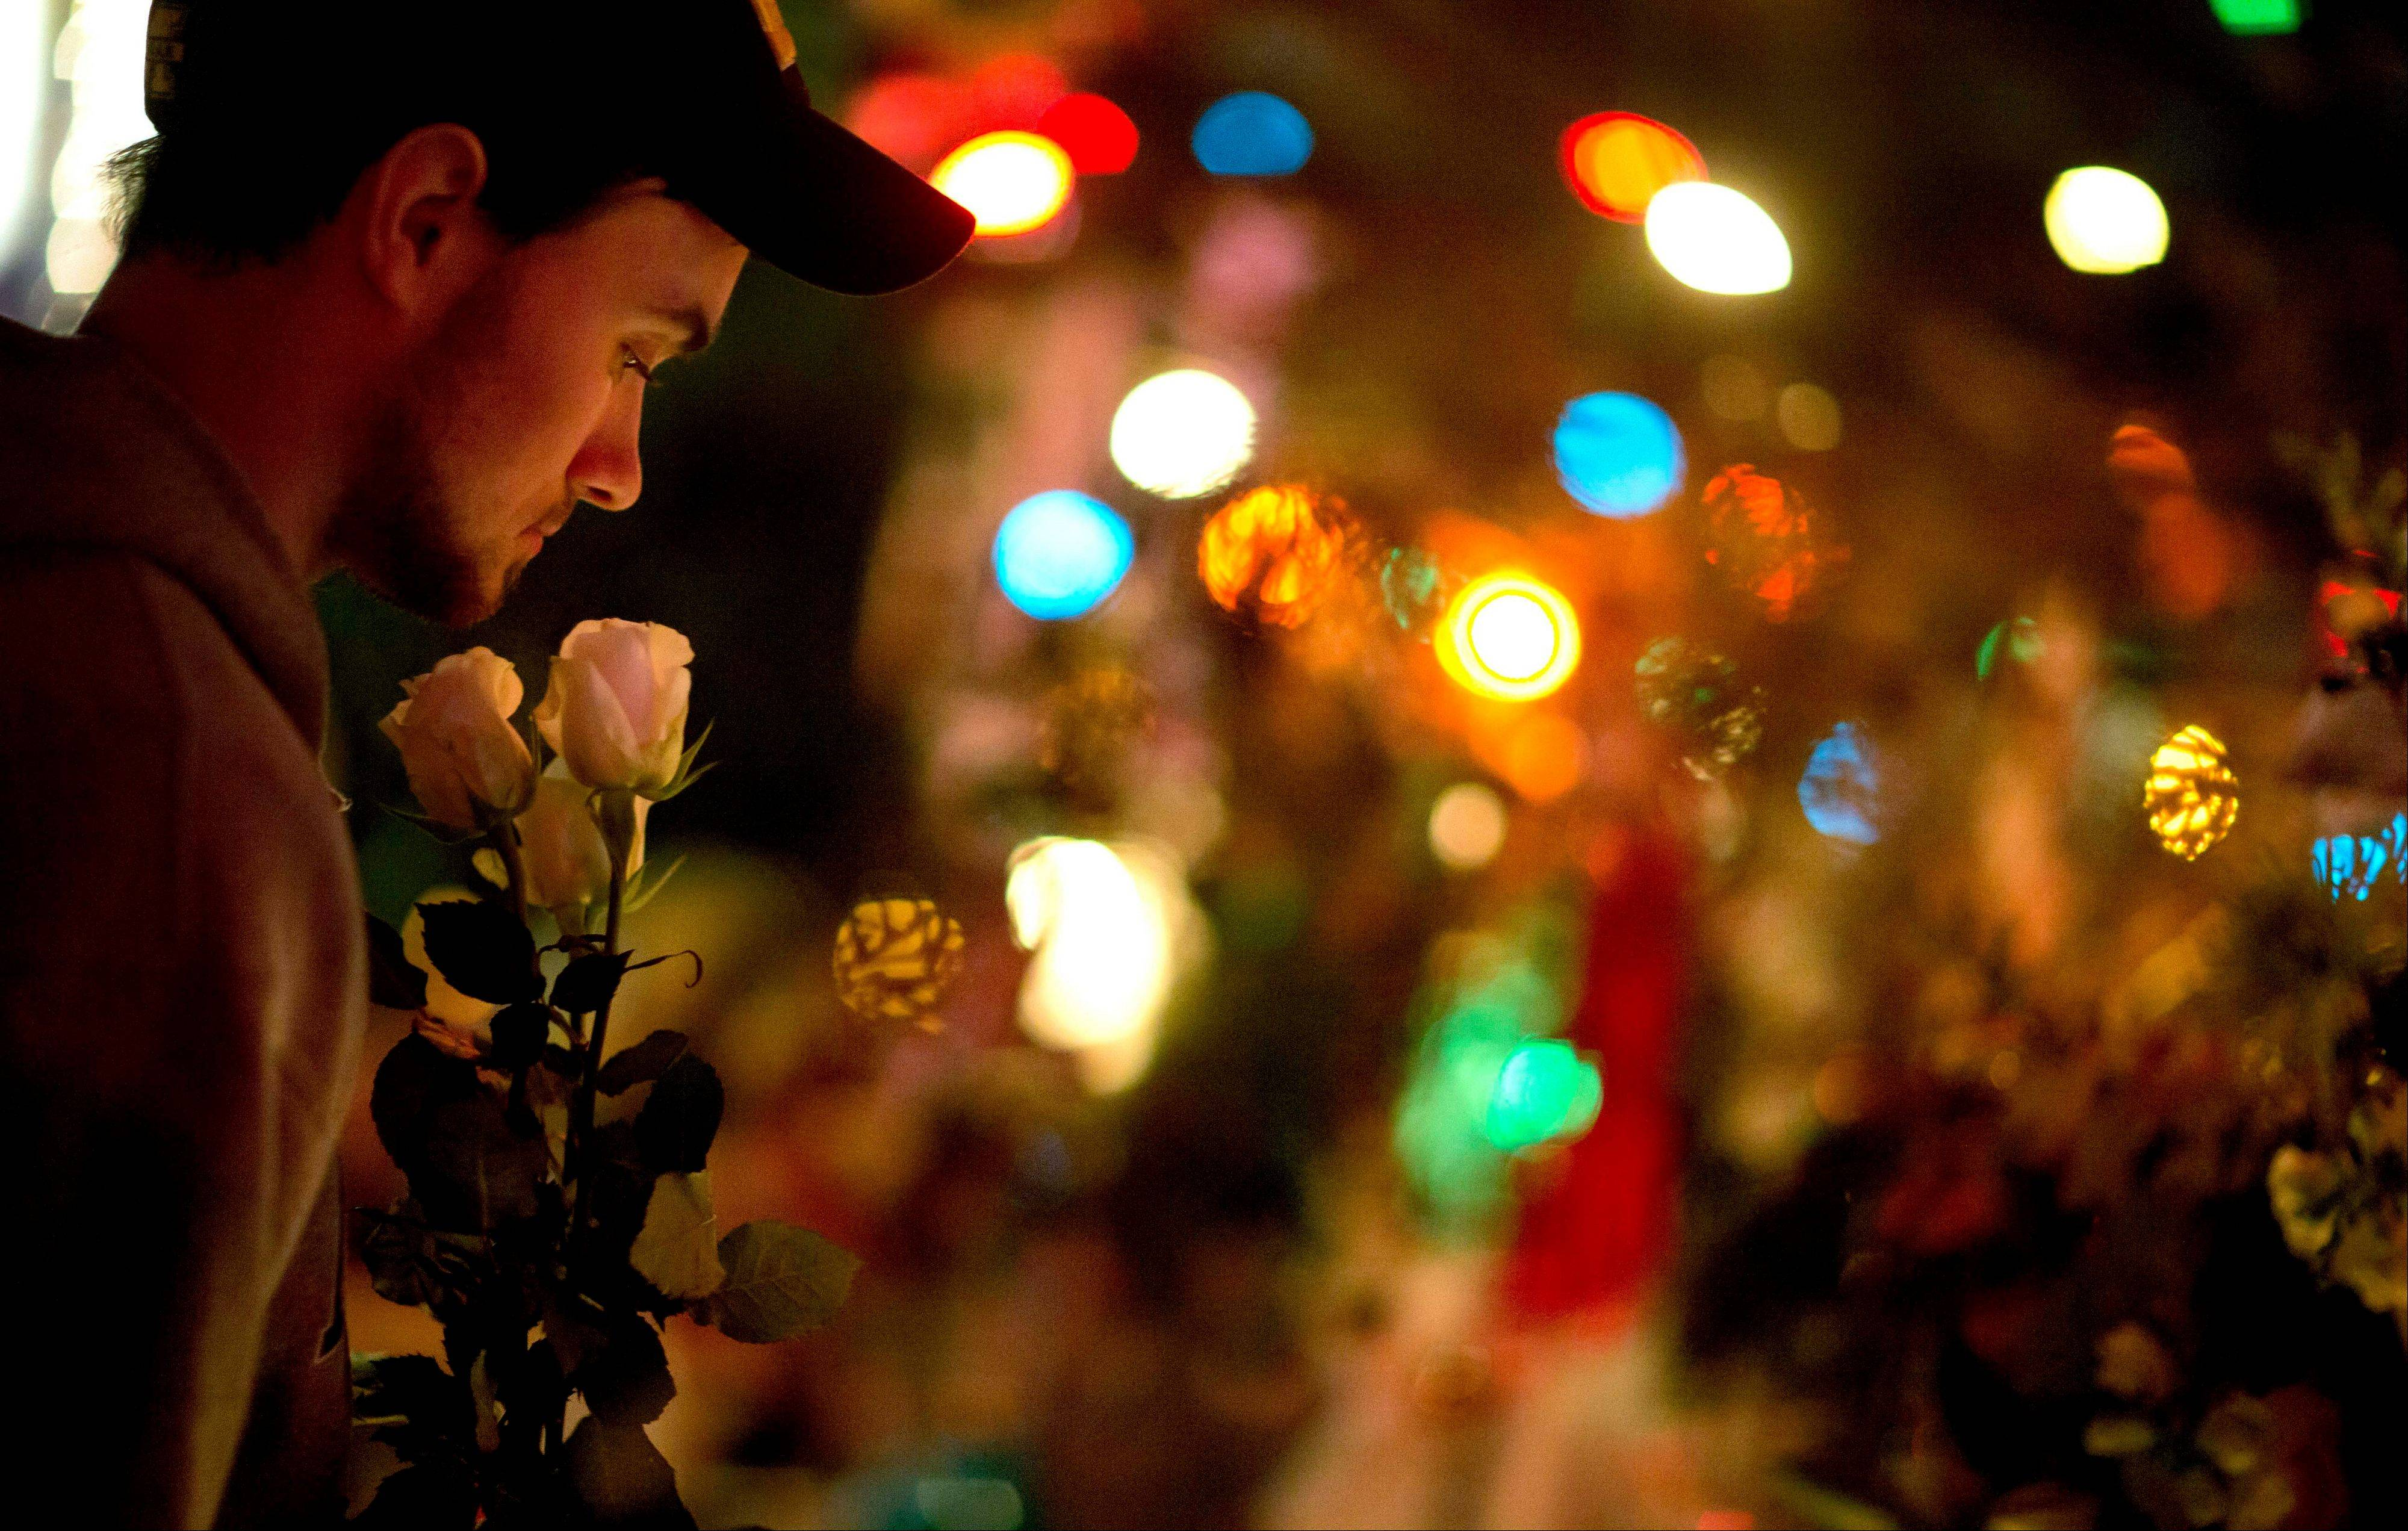 A Newtown resident who identified himself only as Andrew, holds roses as he visits a memorial for the Sandy Hook Elementary School shooting victims, Tuesday in Newtown, Conn.